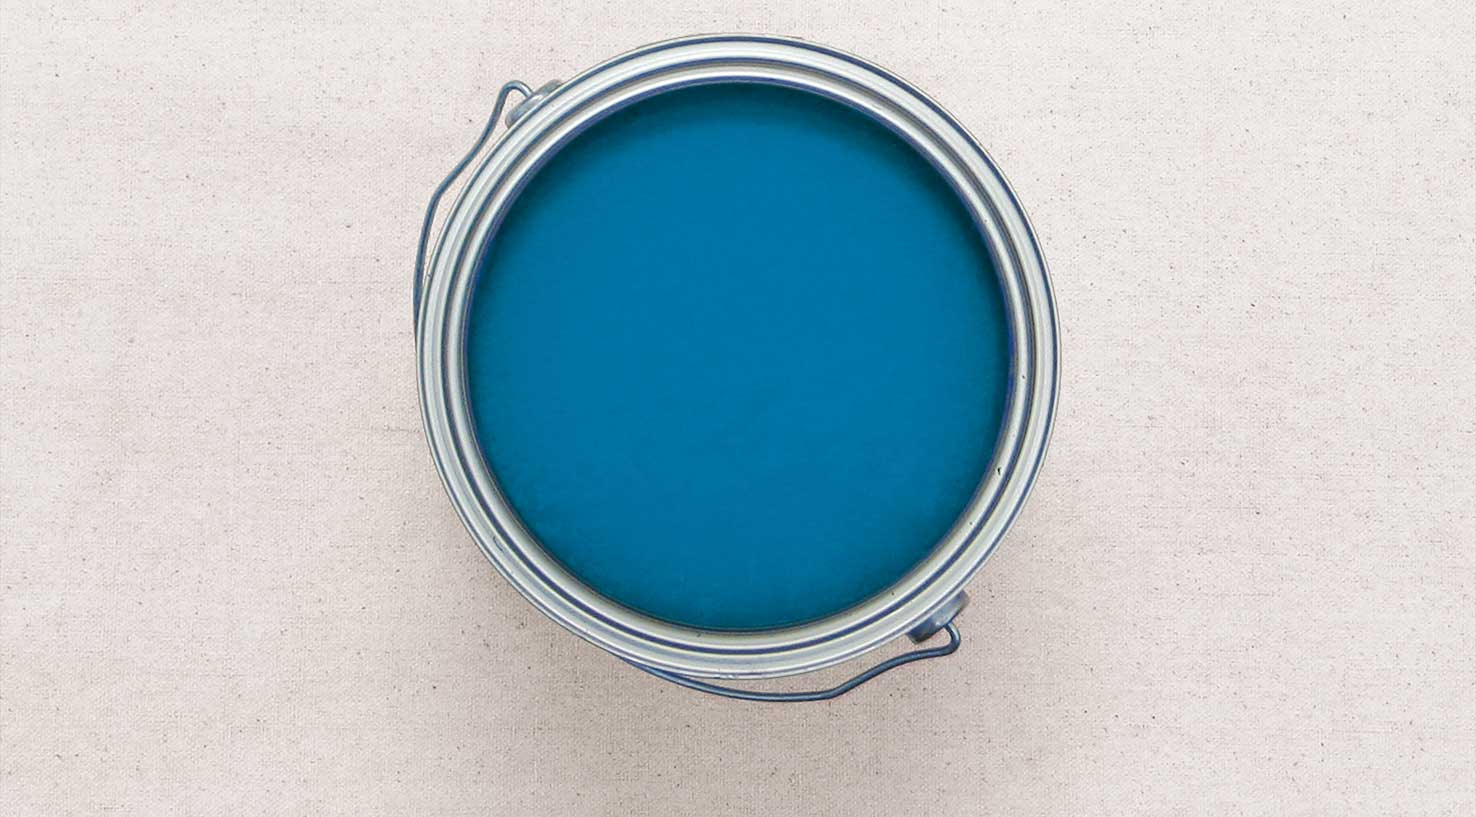 Aeial view of an open gallon can of bright blue paint